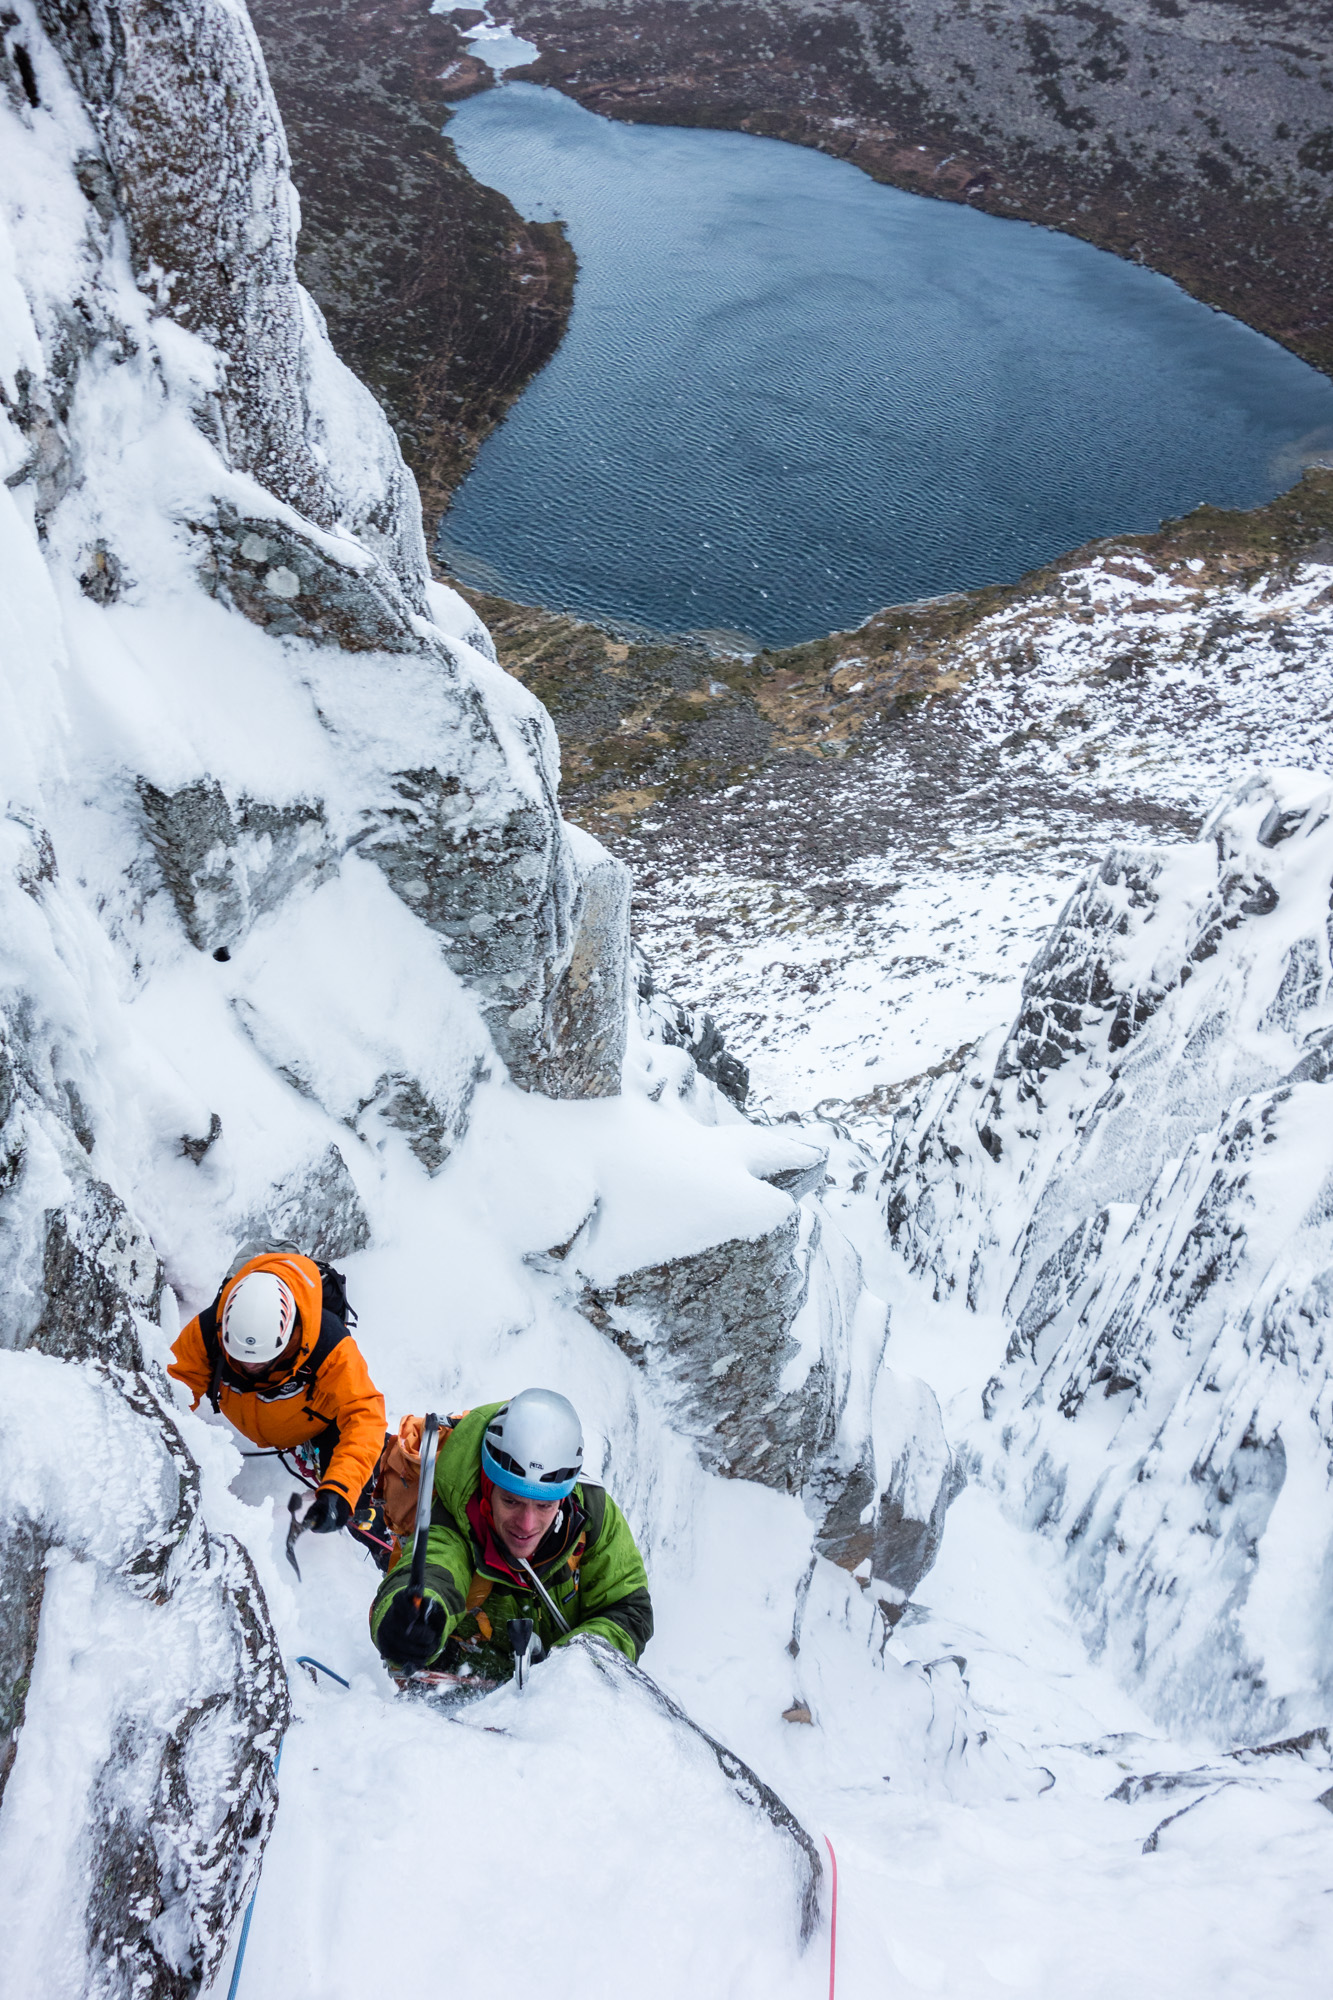 The top of the difficulties on pitch 5, where an exposed move left around the projecting block gains the easier angled gully above